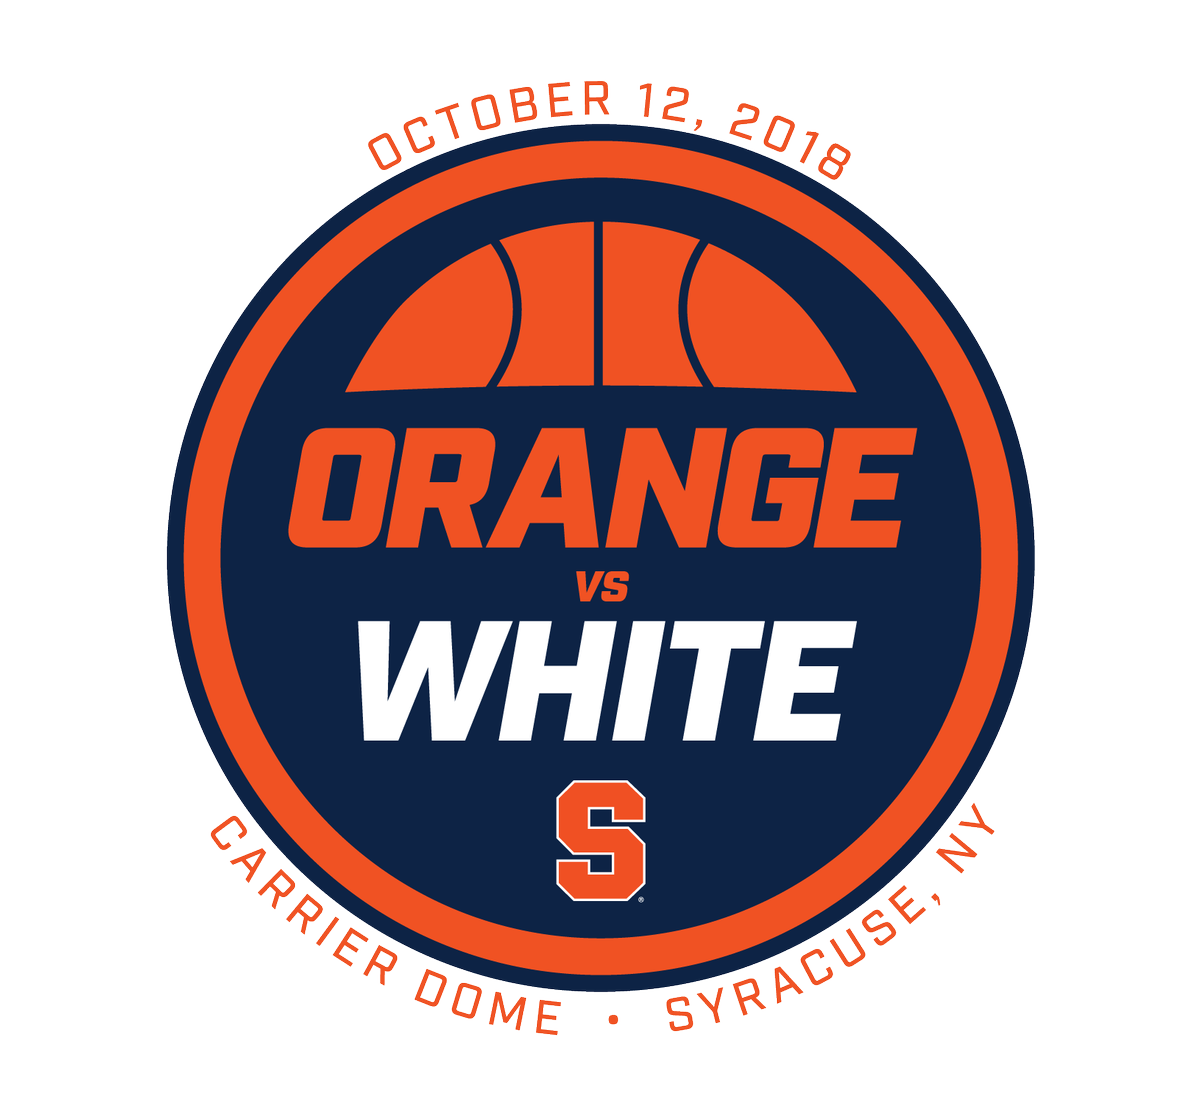 Syracuse Basketball On Twitter Orange Vs White